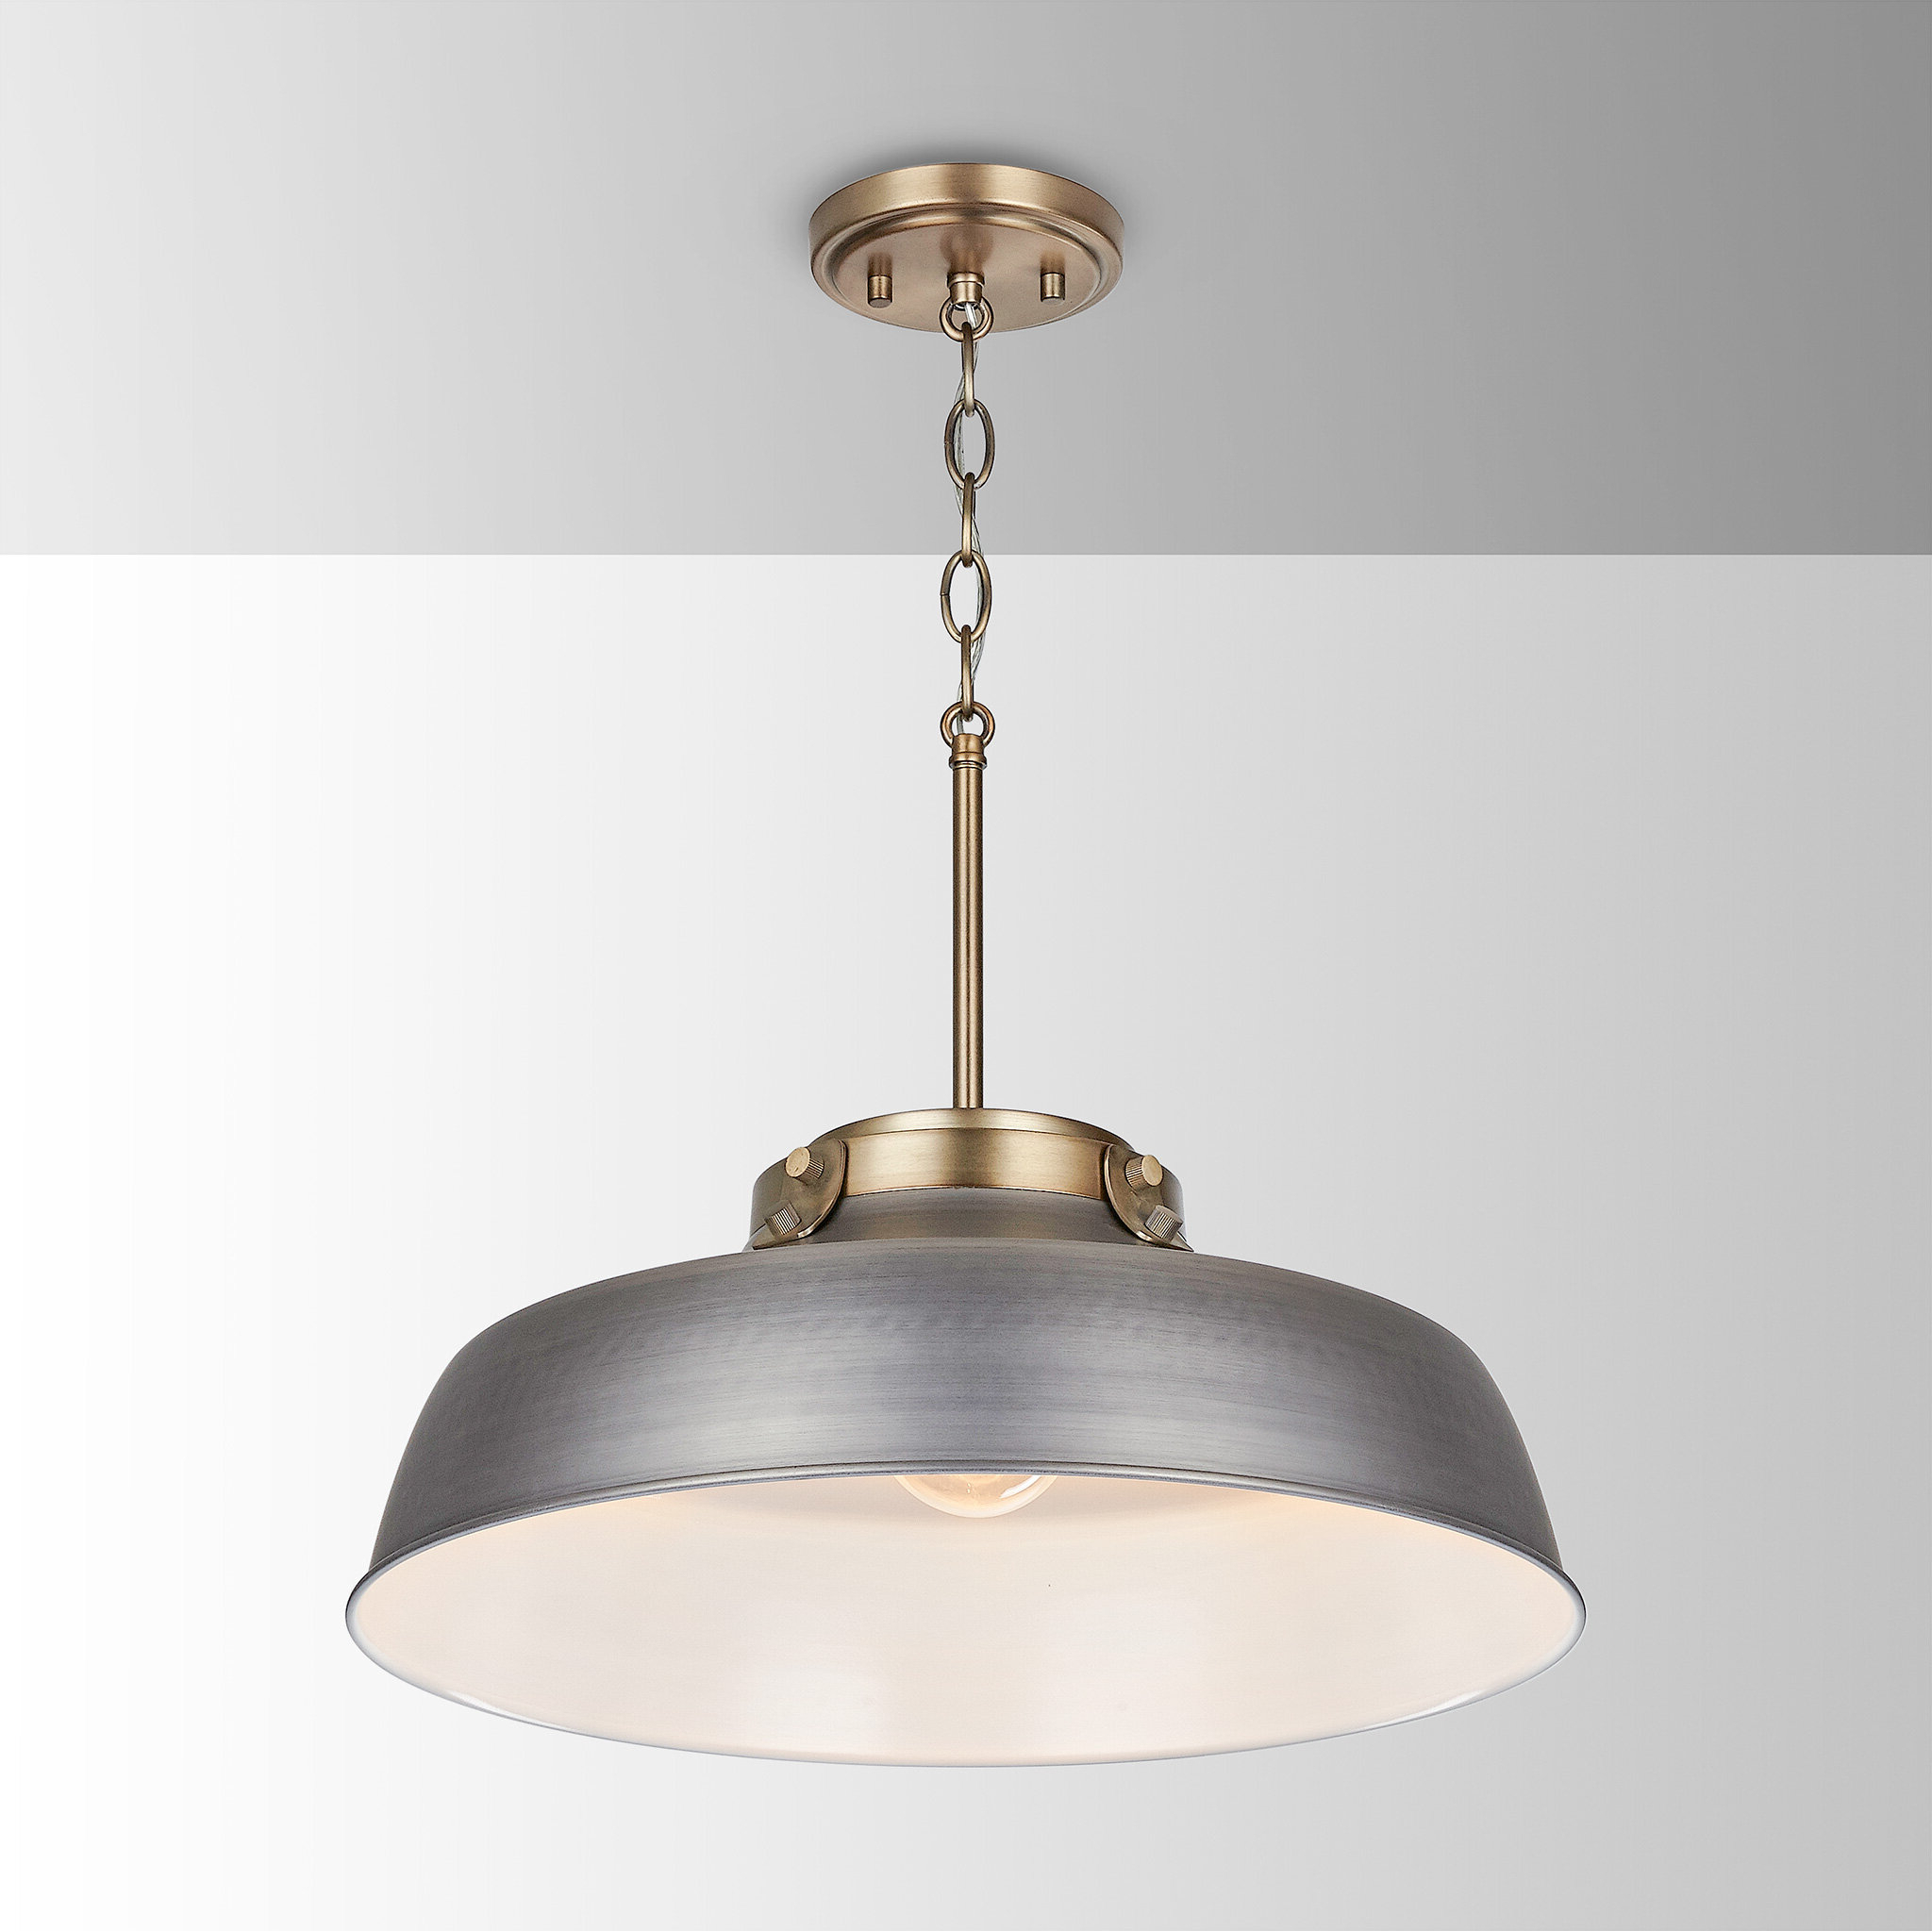 1 Light Dome Pendant Regarding Best And Newest Conover 1 Light Dome Pendants (View 7 of 20)